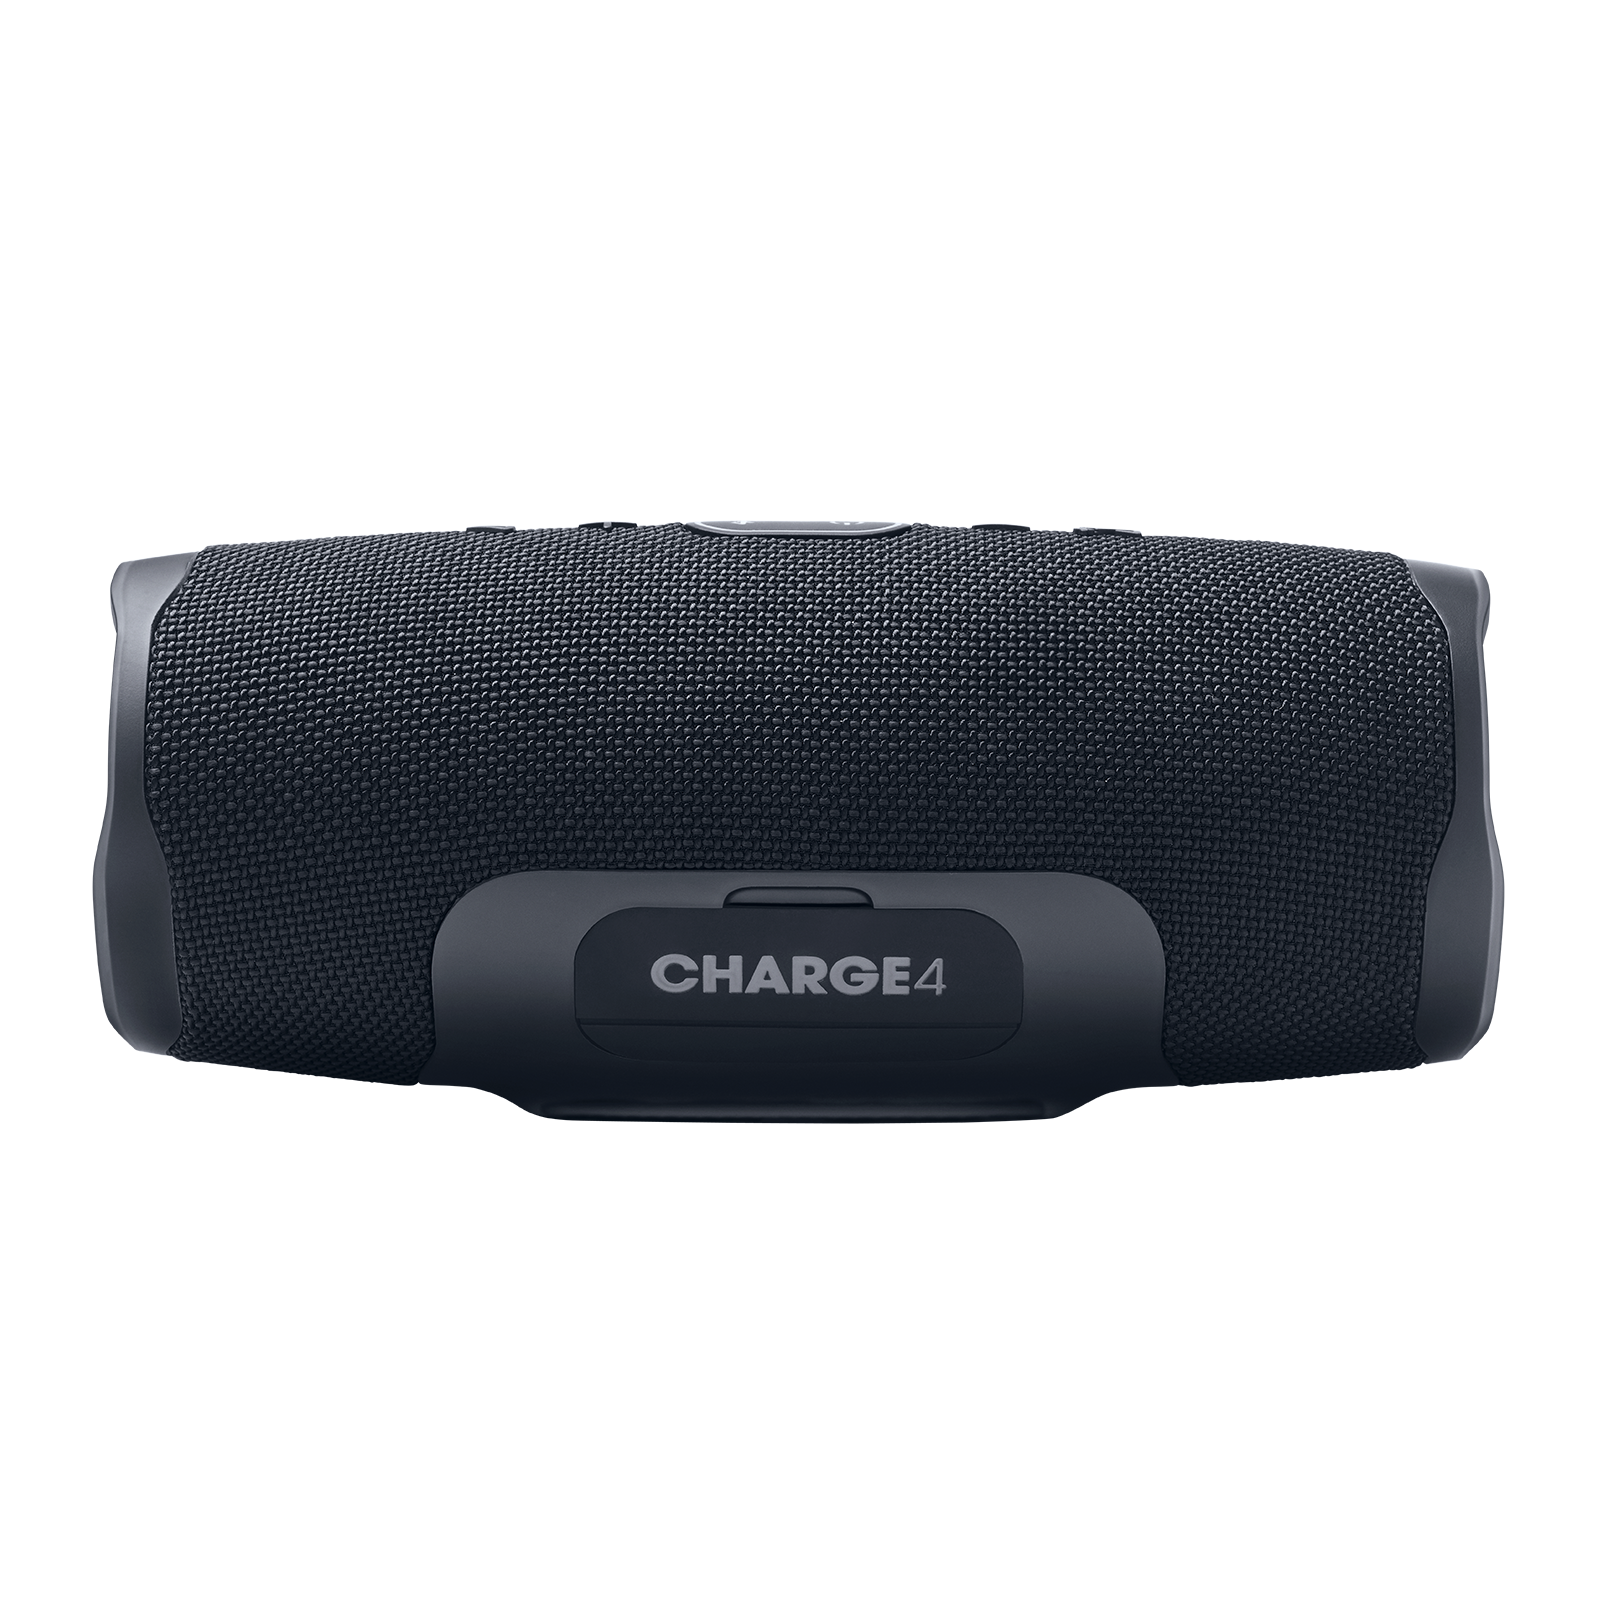 JBL Charge 4 - Black - Portable Bluetooth speaker - Back